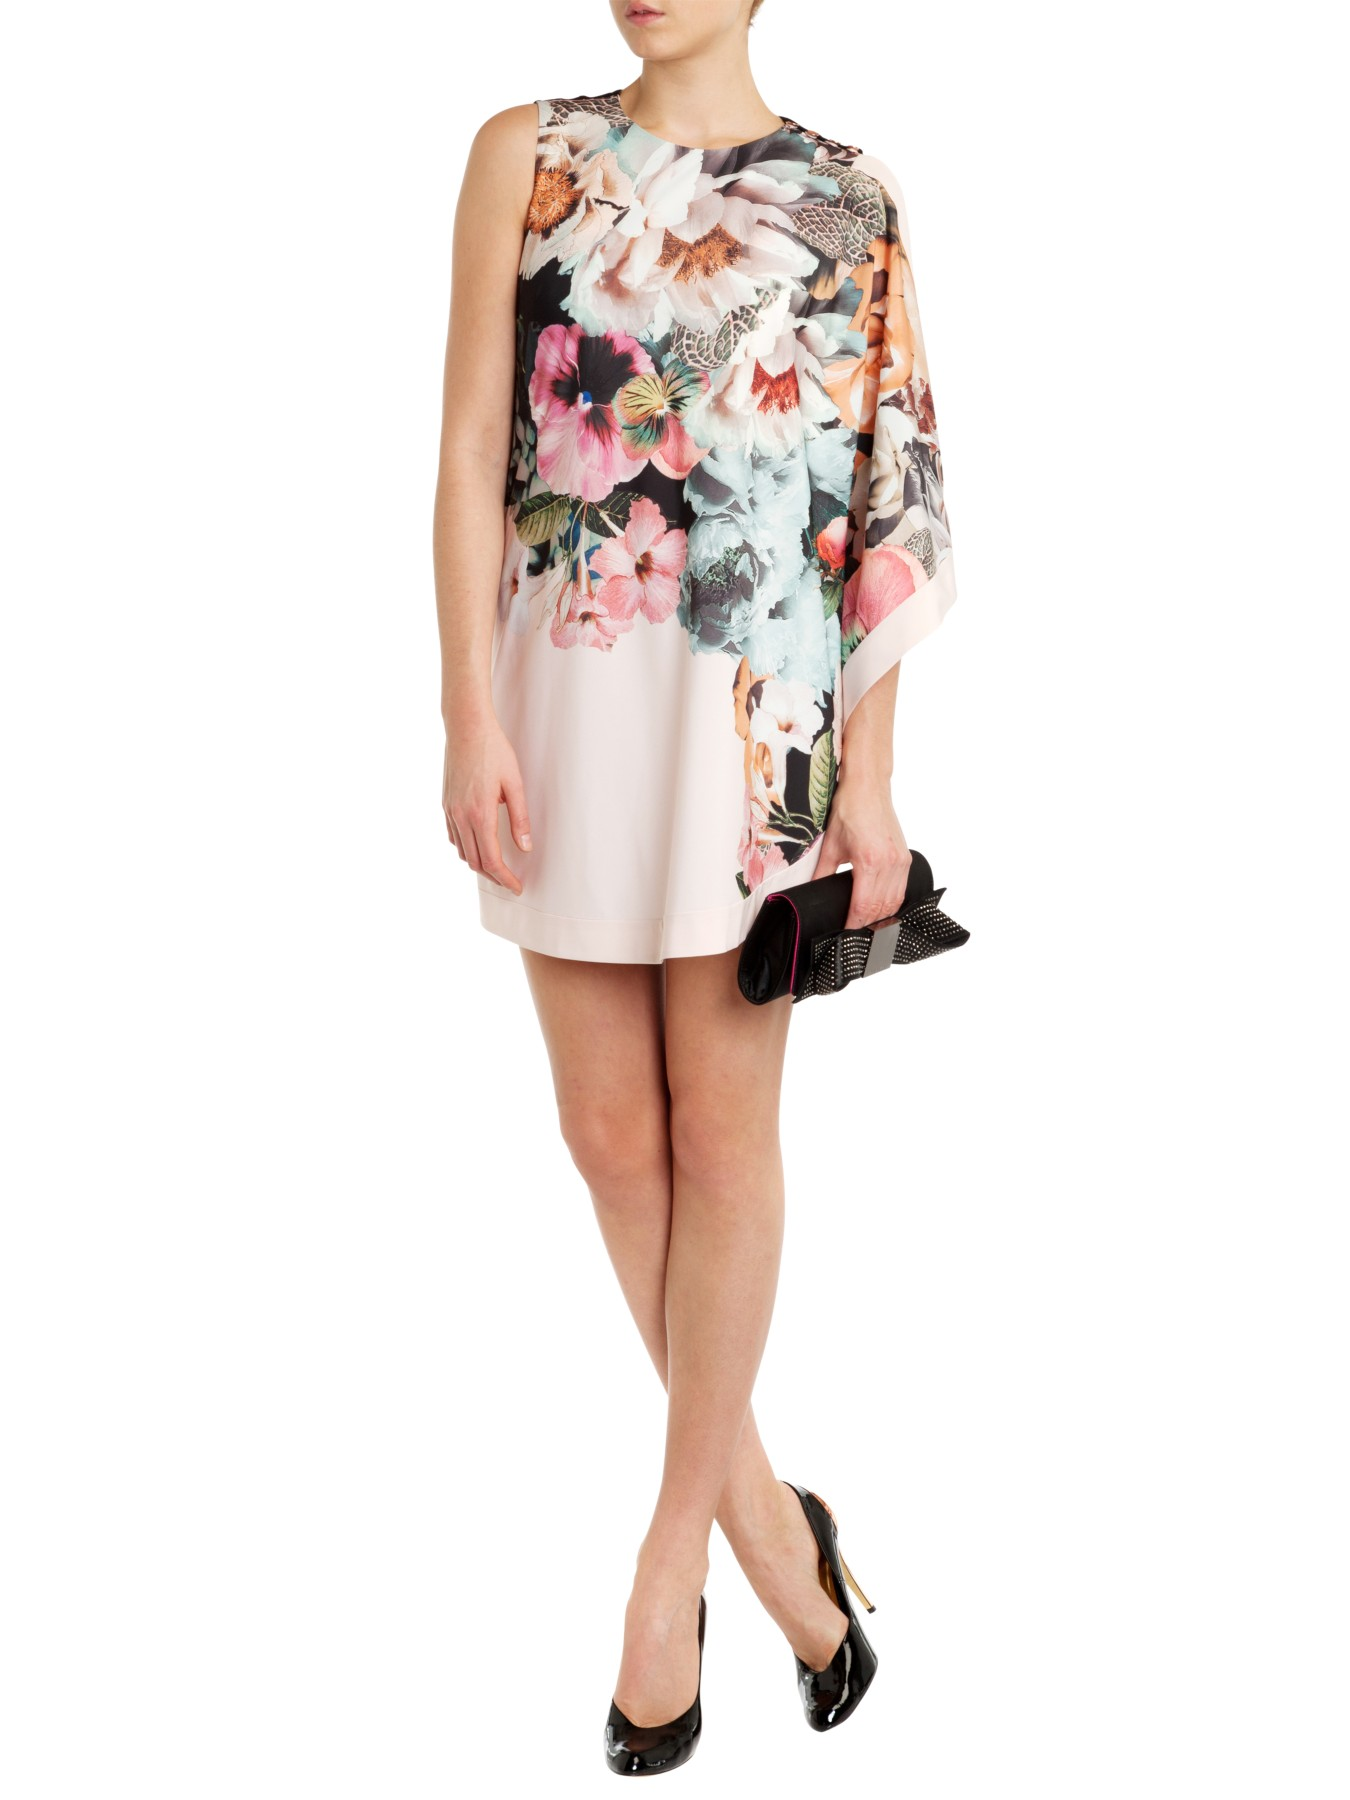 891c533f1 Ted Baker Tangled Floral Printed Tunic Dress in White - Lyst